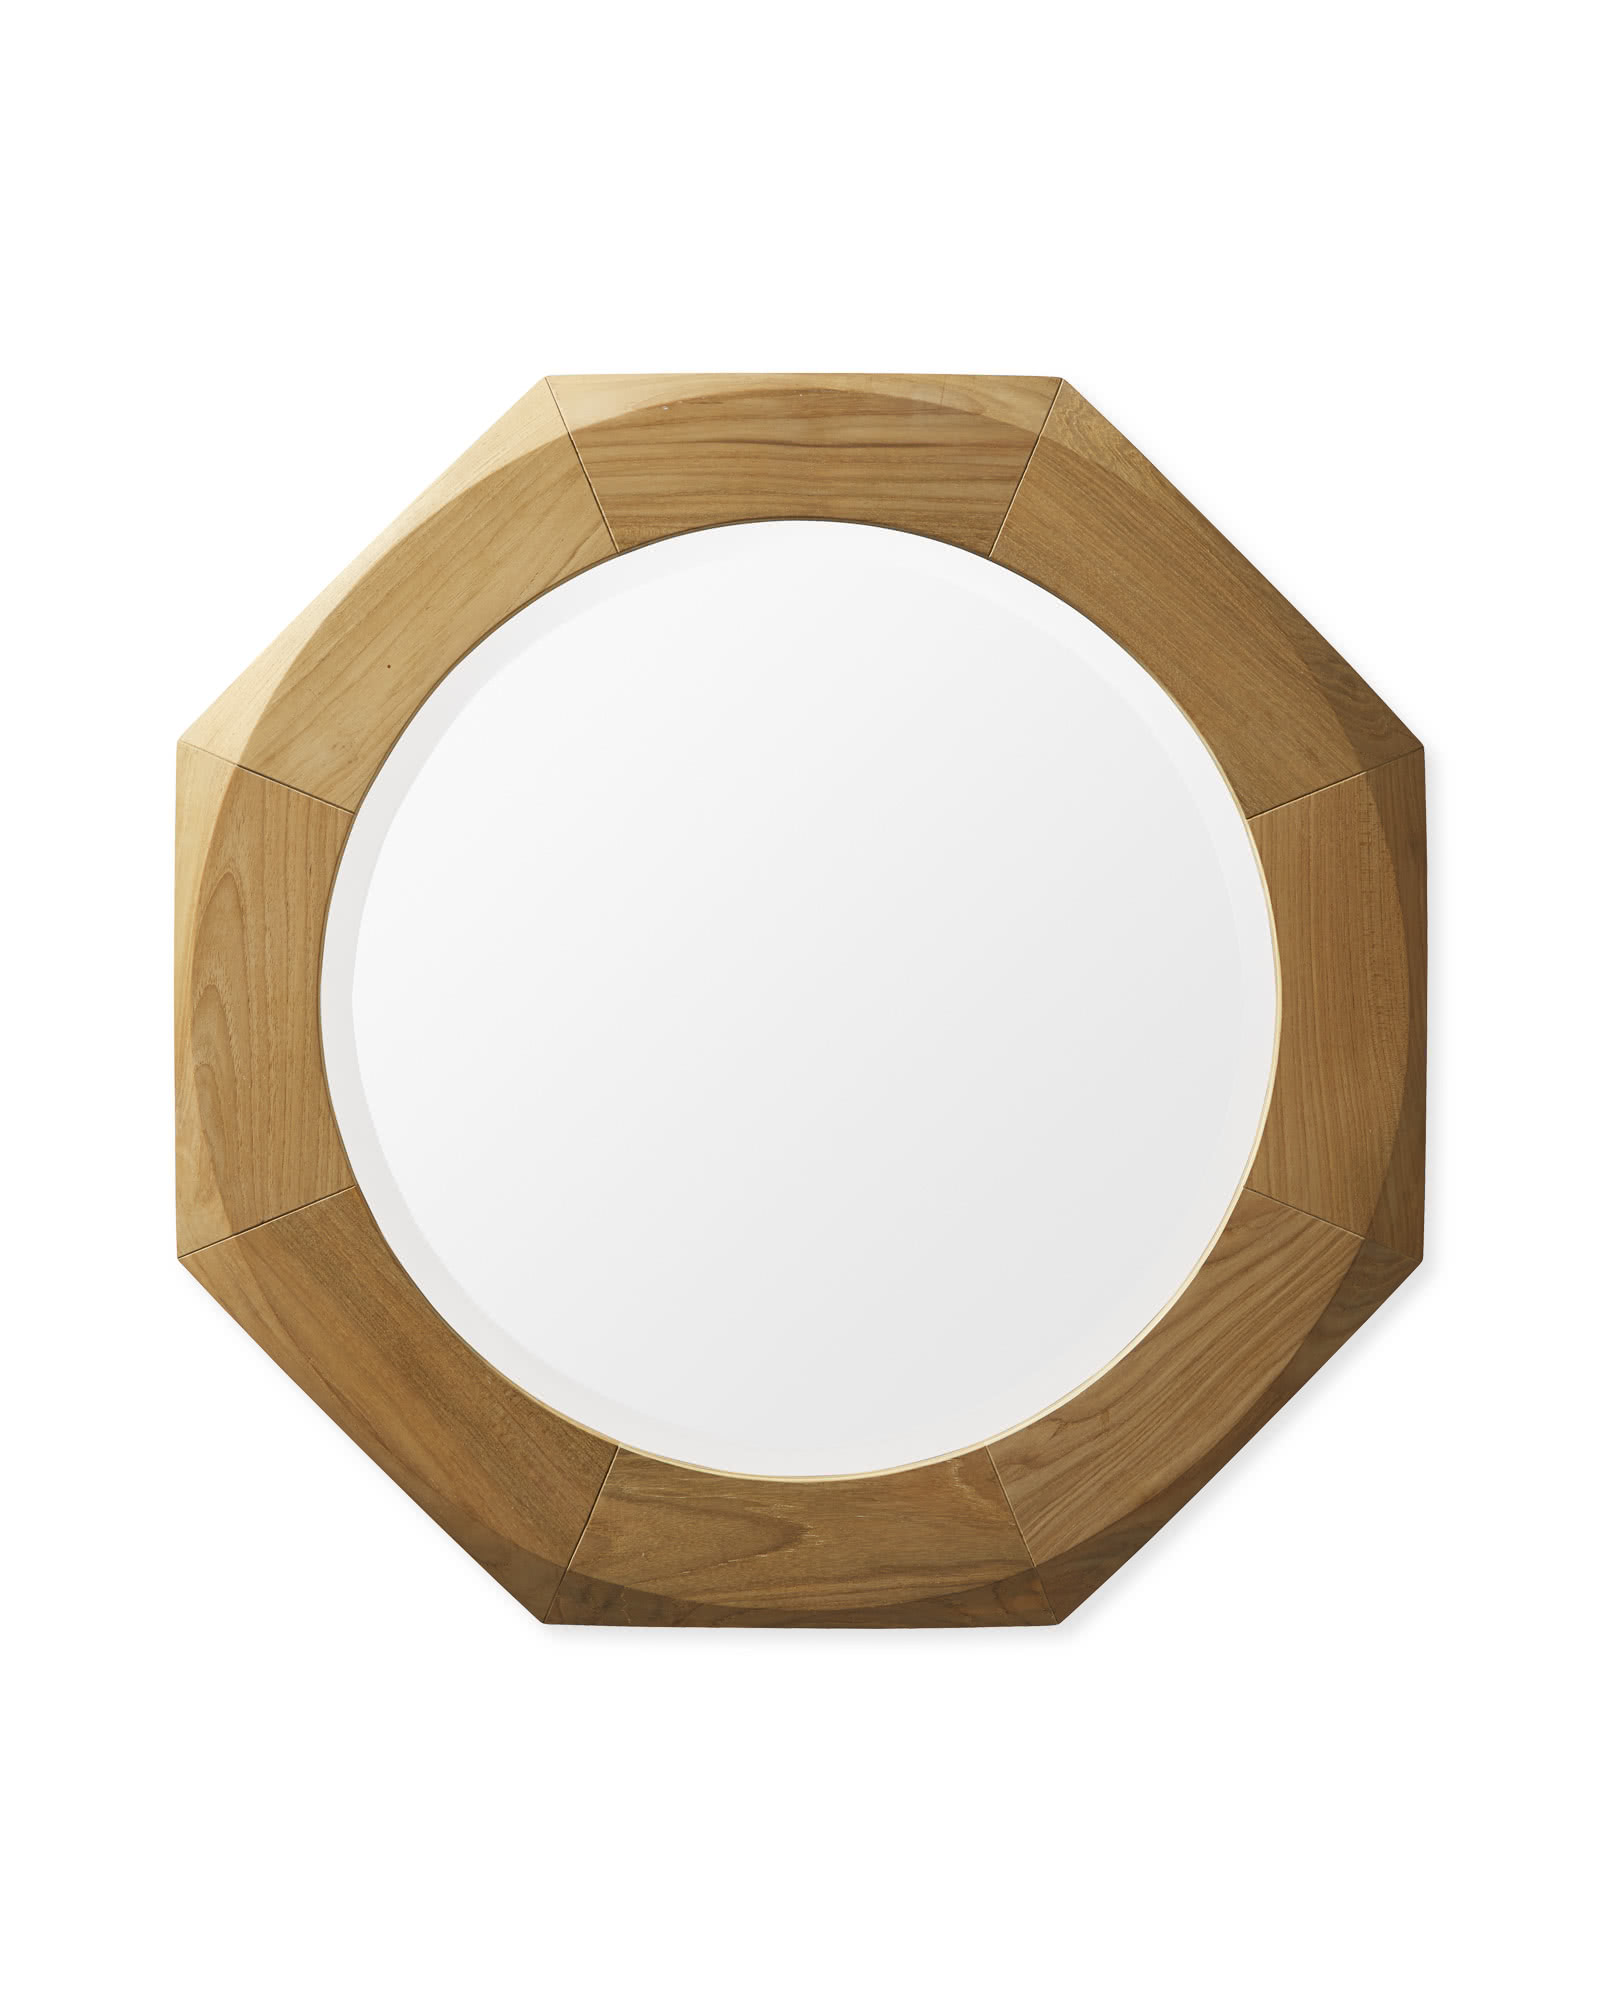 Woodside Outdoor Mirror,